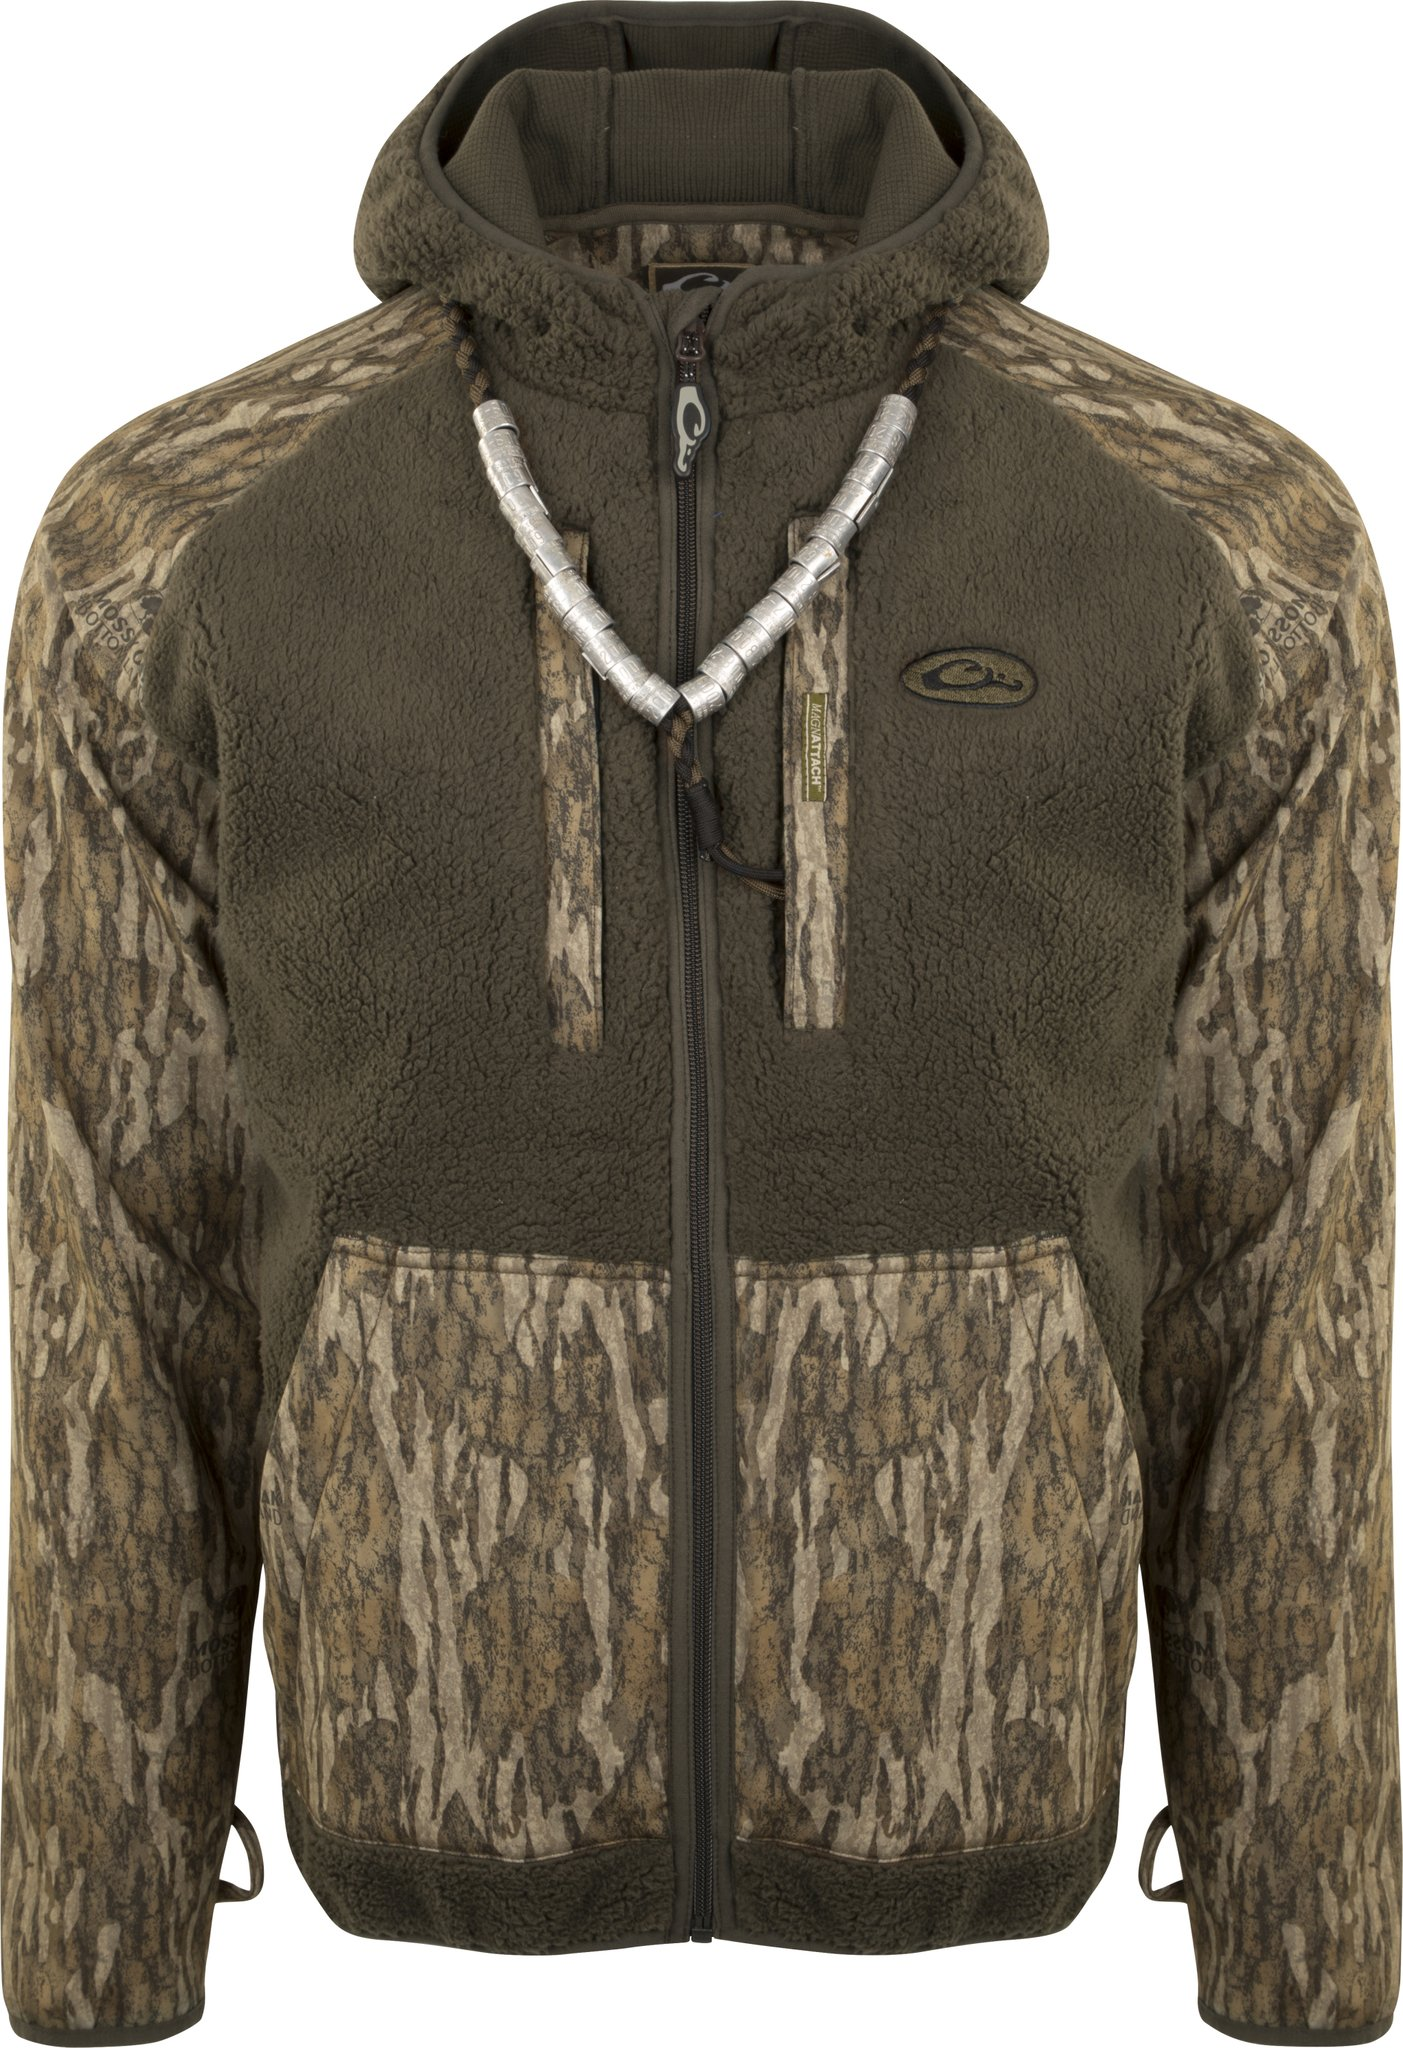 Drake MST Sherpa Fleece Hybrid Linder Full Zip with Hood (Bottomland, Medium)